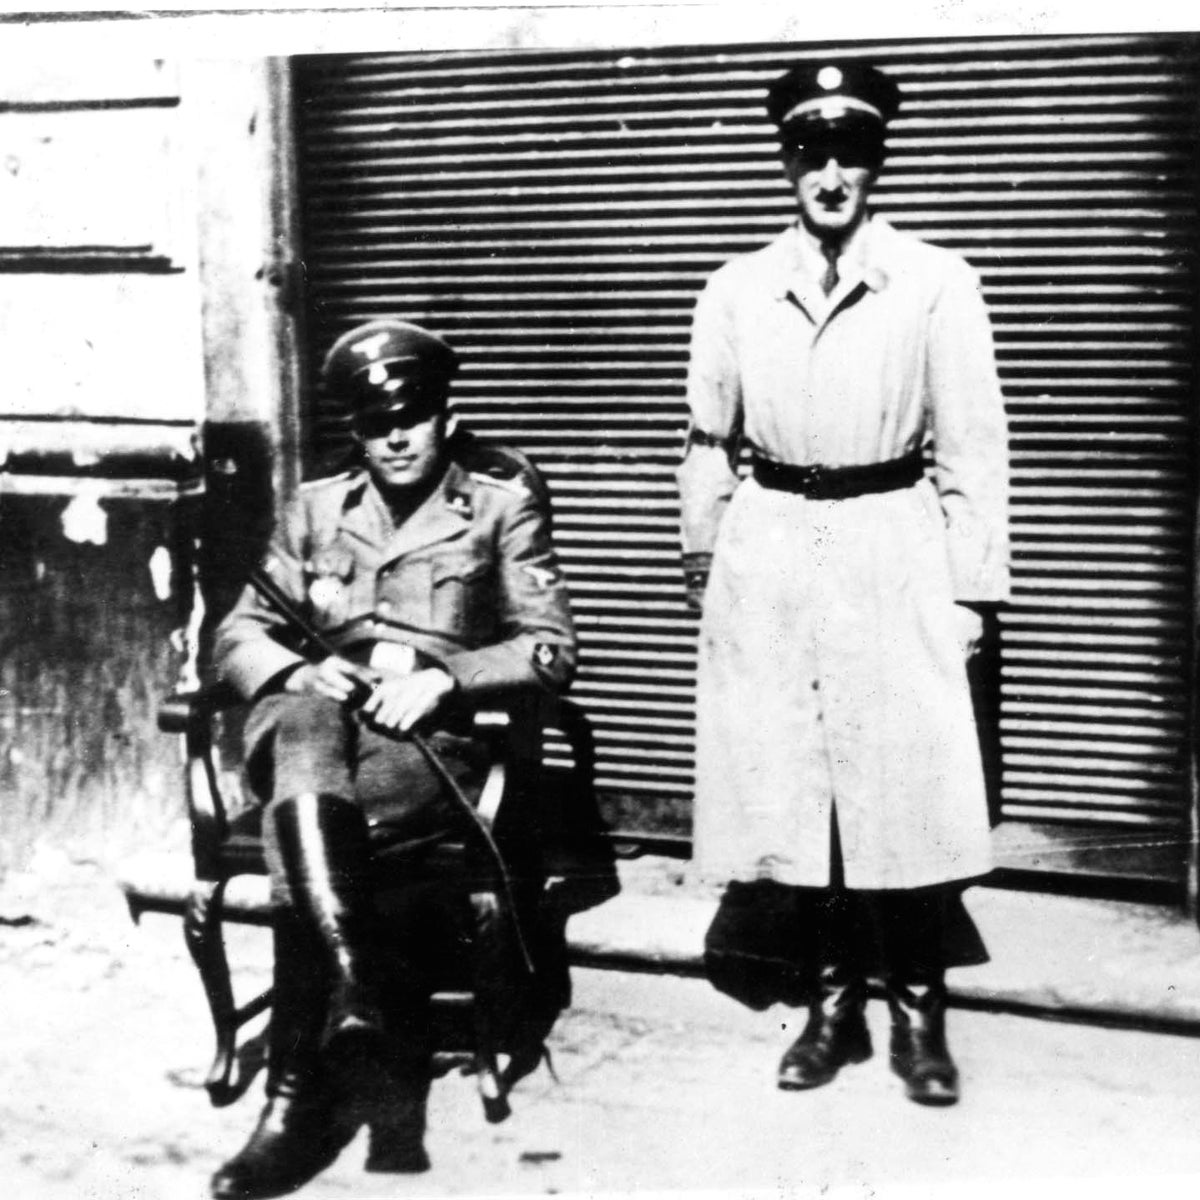 A Jewish policeman and a German soldier in the Warsaw Ghetto, in 1942.